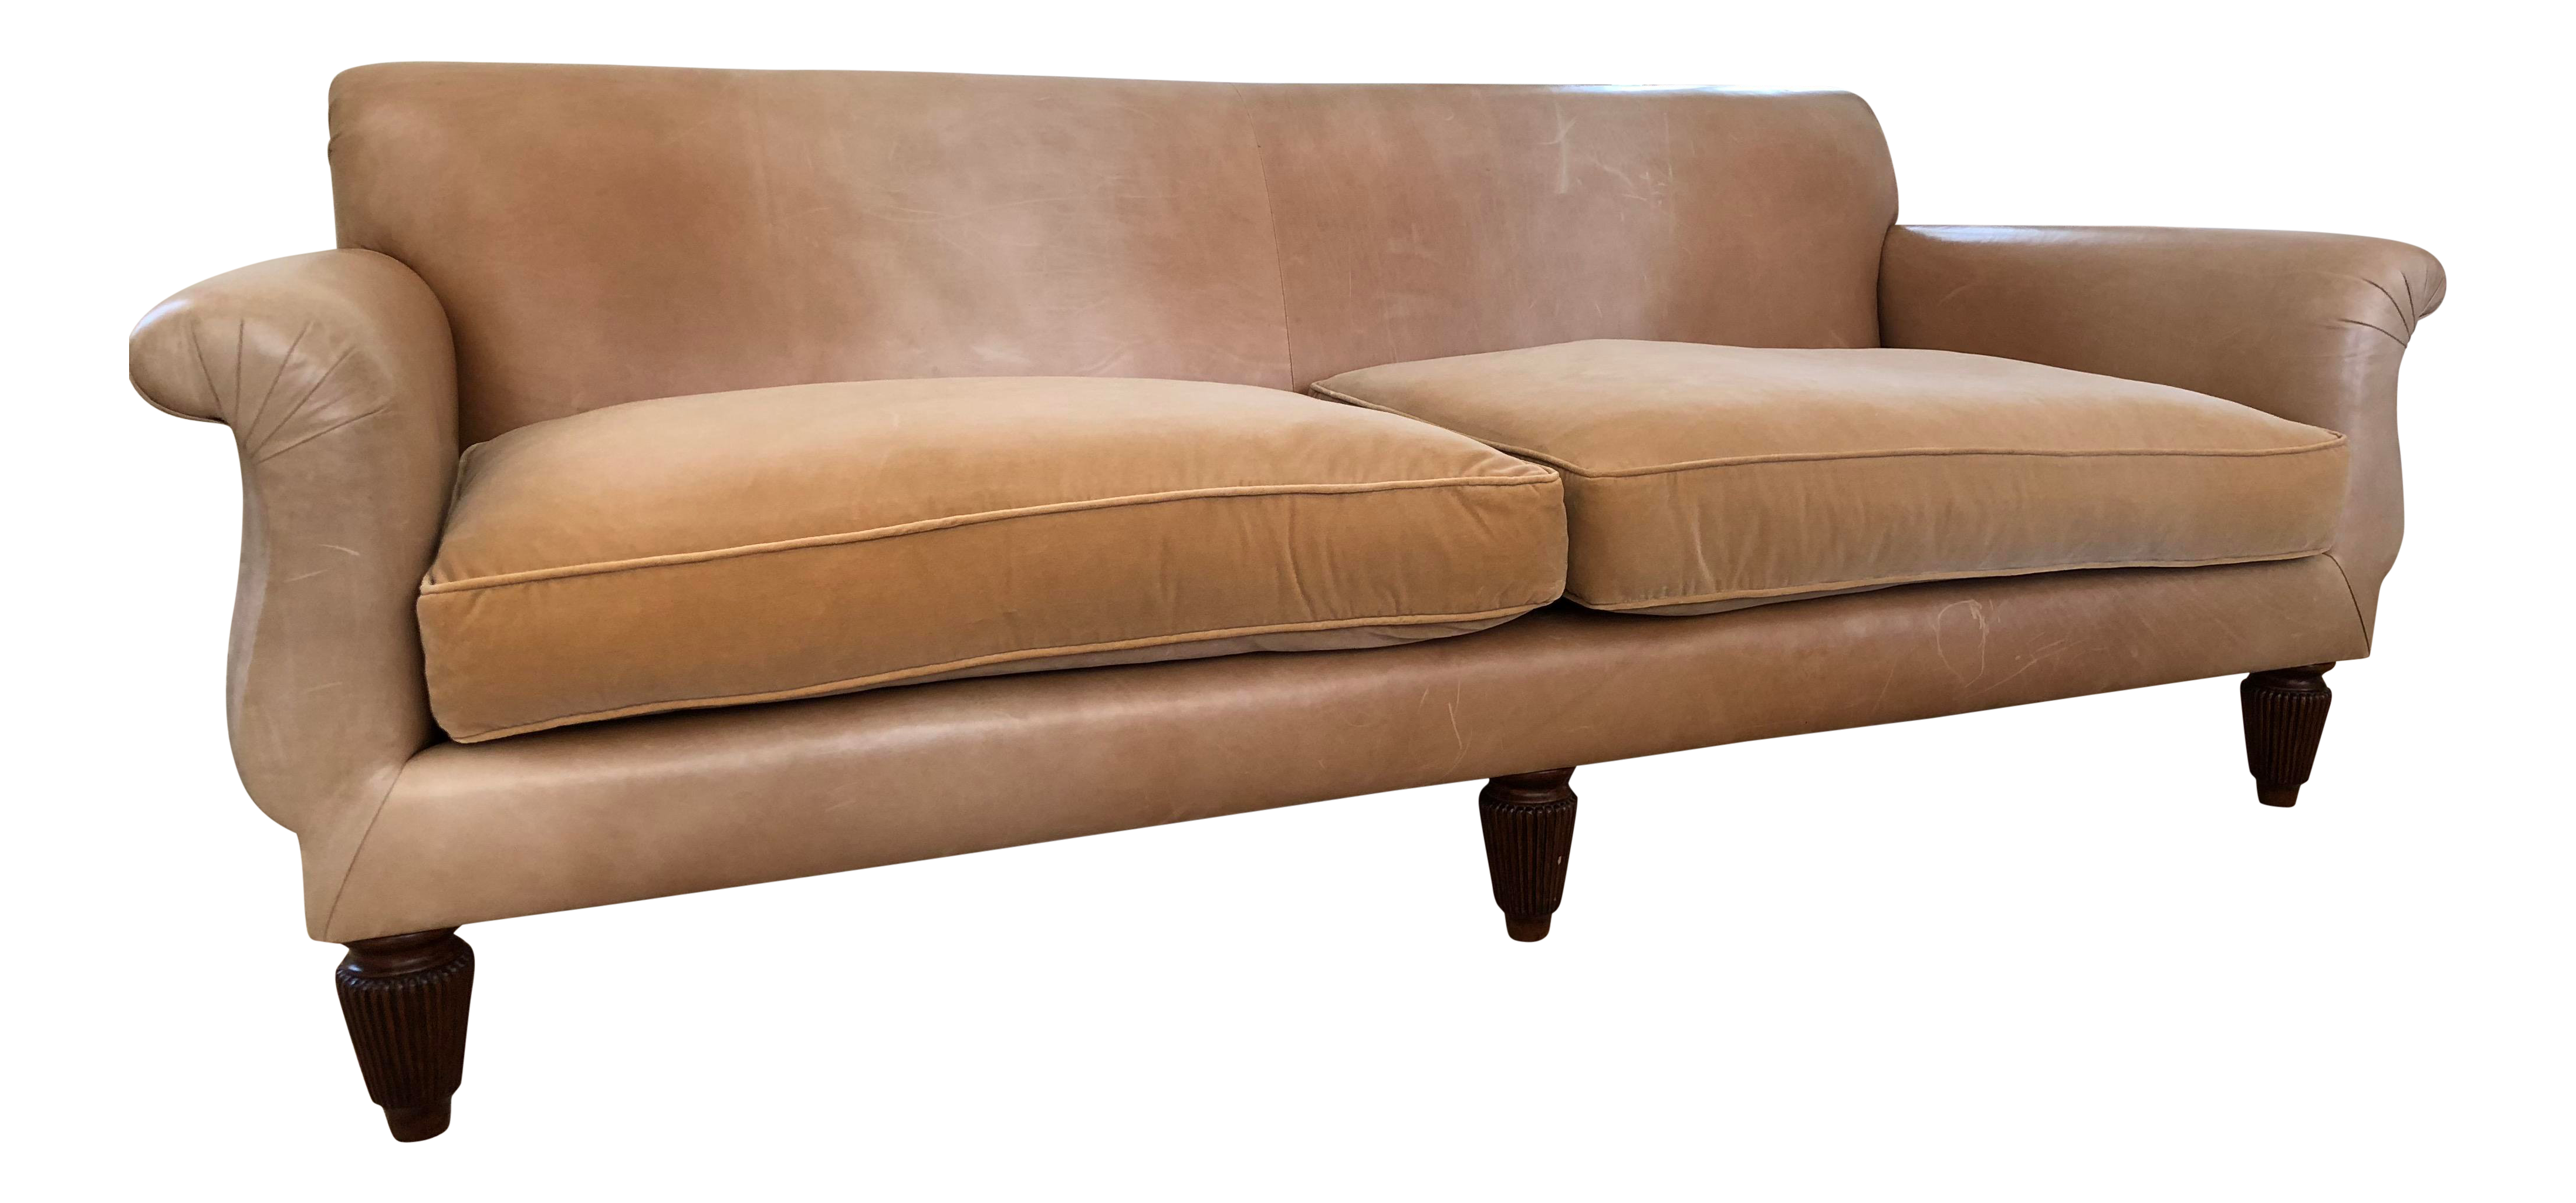 Martyn Lawrence Bullard Leather Sofas With Cotton Velvet Seat Cushions   A  Pair.